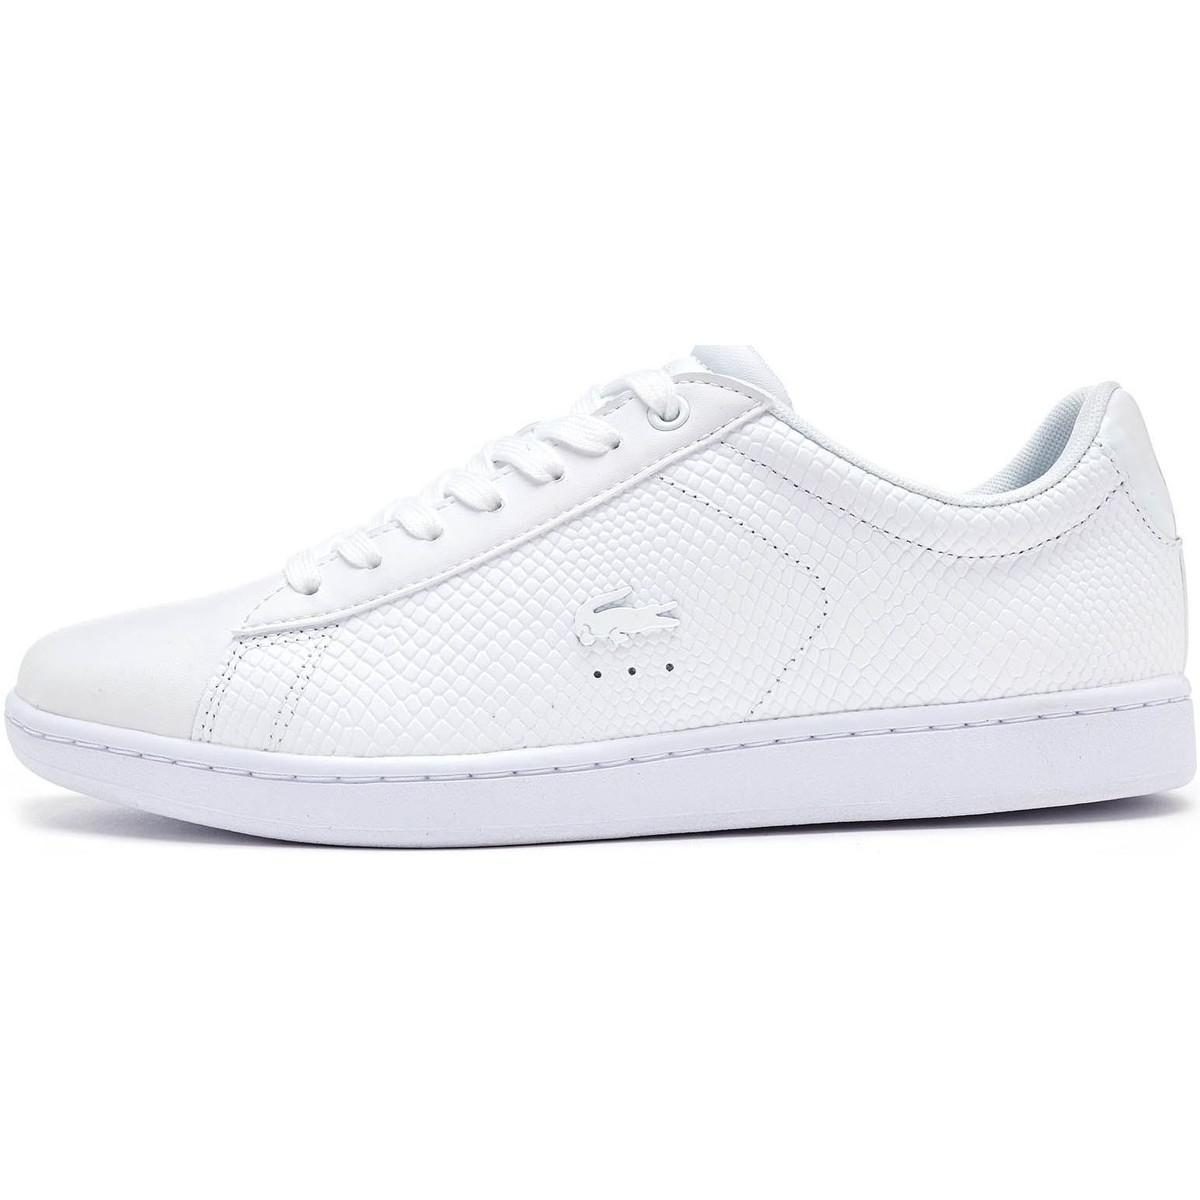 3c3d31d7f Lacoste Carnaby Evo 317 3 Spw Leather Trainers In Triple White ...